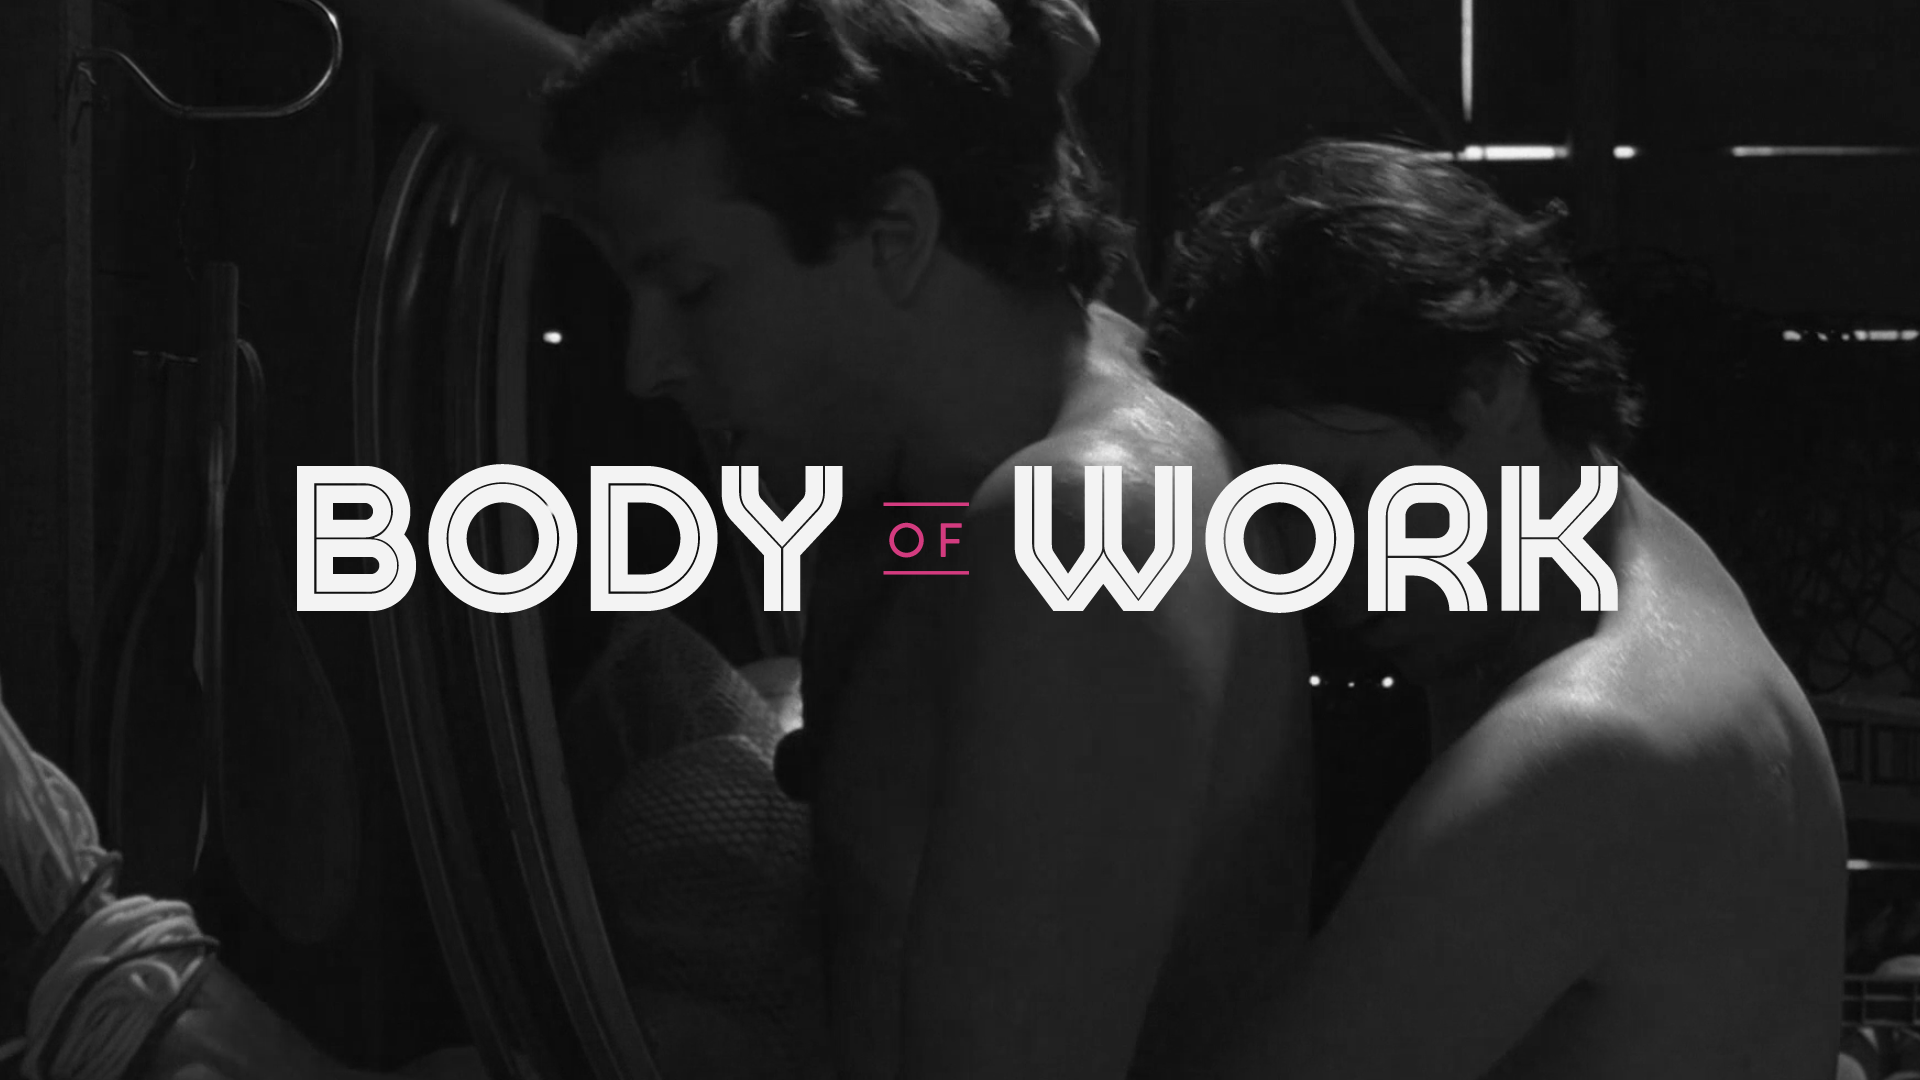 Body of Work: Bradley Cooper